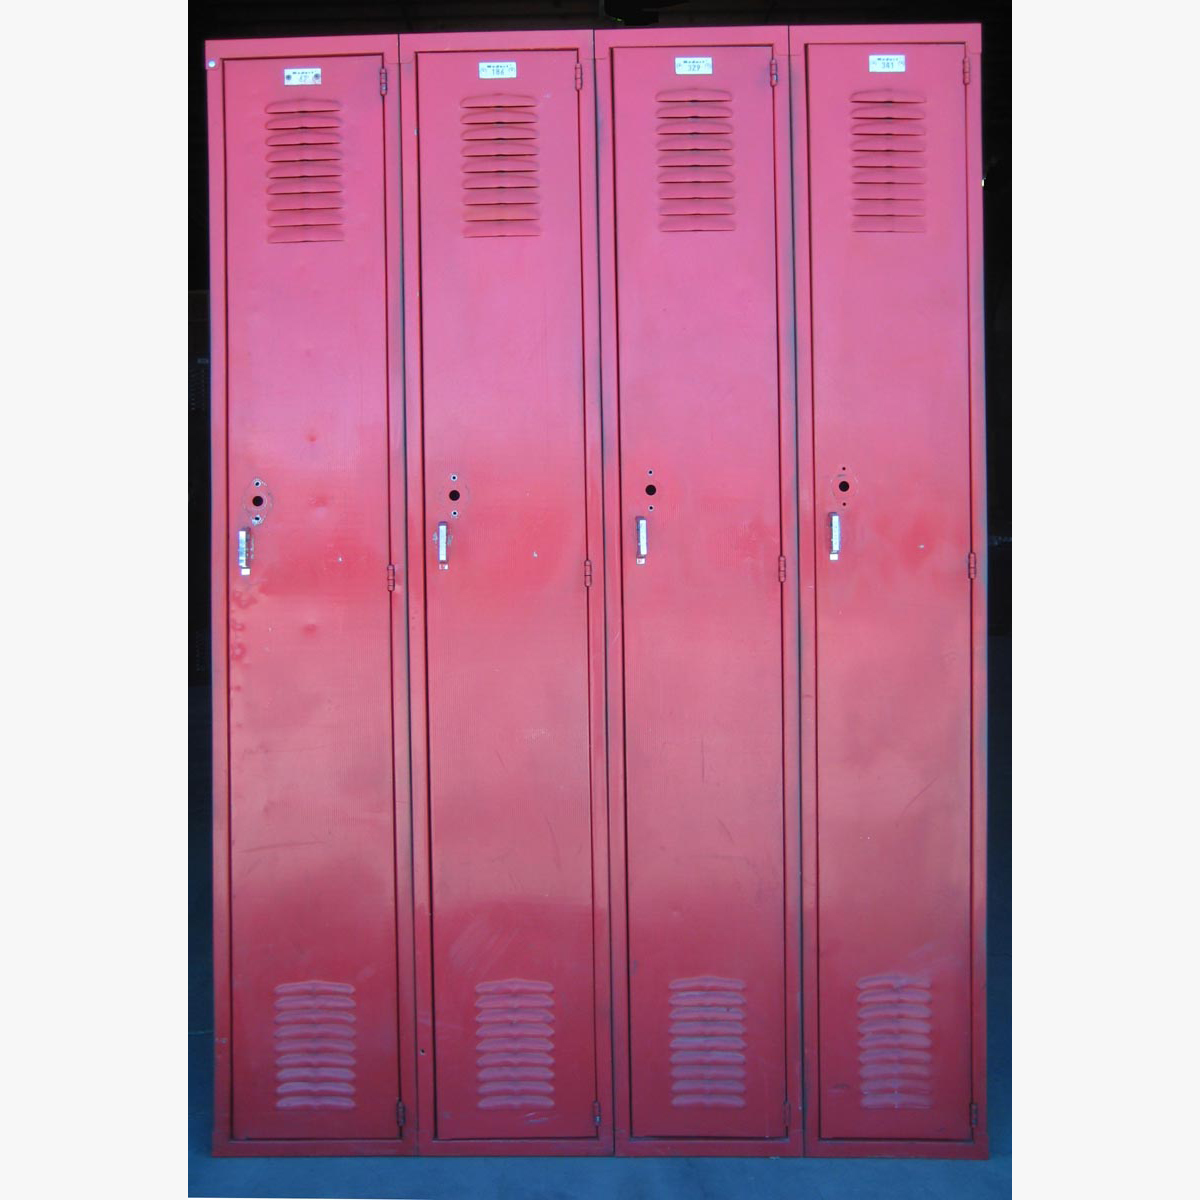 Discounted Metal Lockers